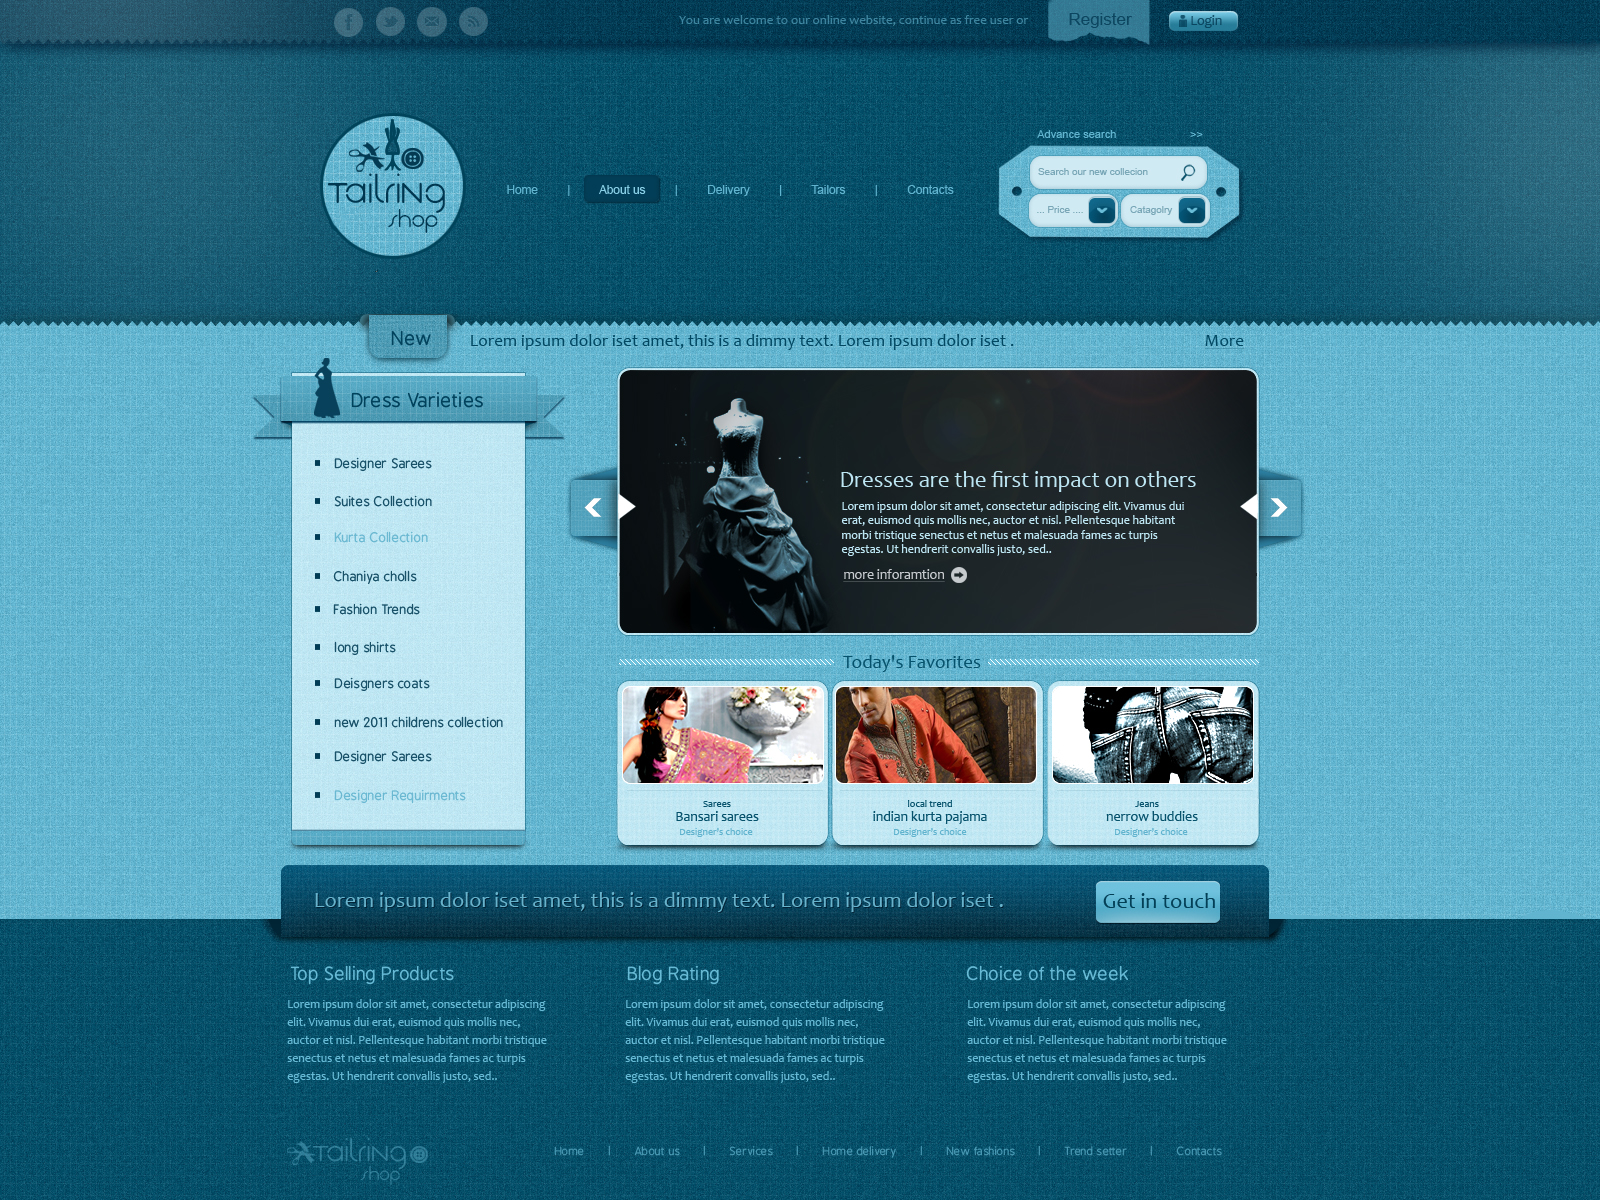 tailoring shop web template by shagiie on DeviantArt